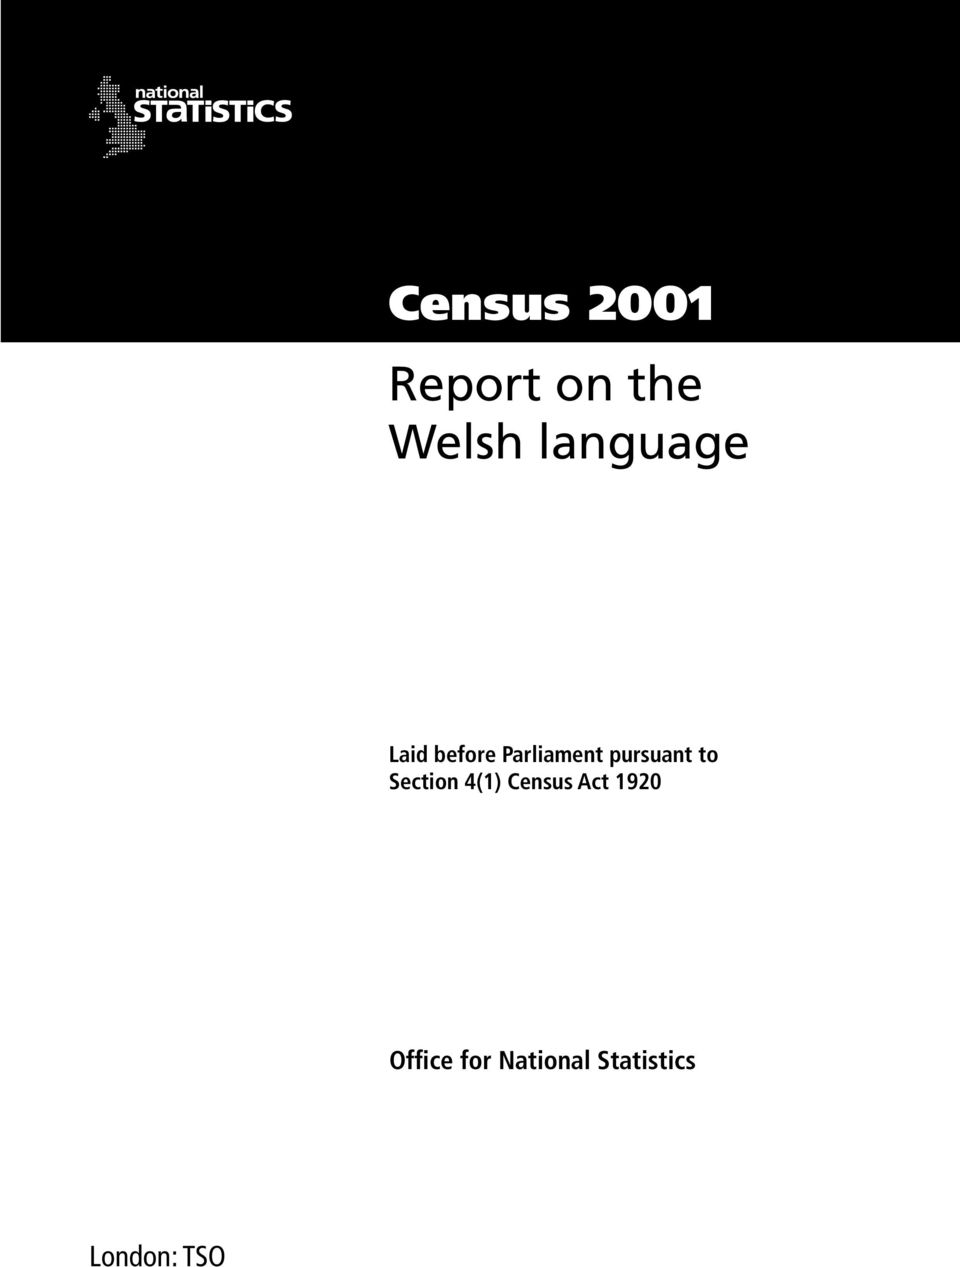 Census 2001 Report on the Welsh language - PDF